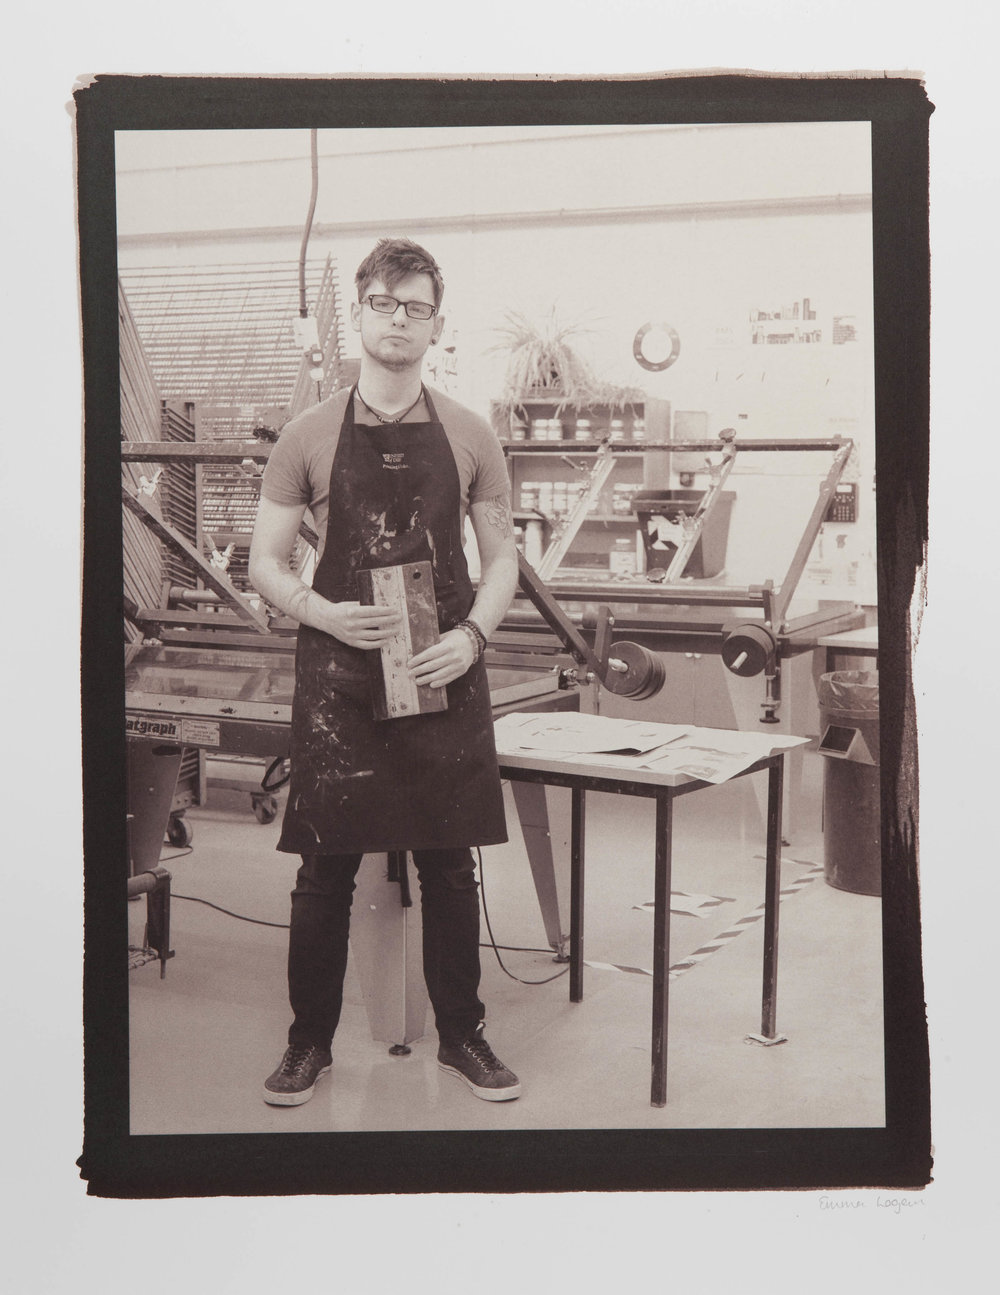 "Hand Made Crafts People. Screen Printer. Digital Negative Salt Prints. Original size - 16x20""."